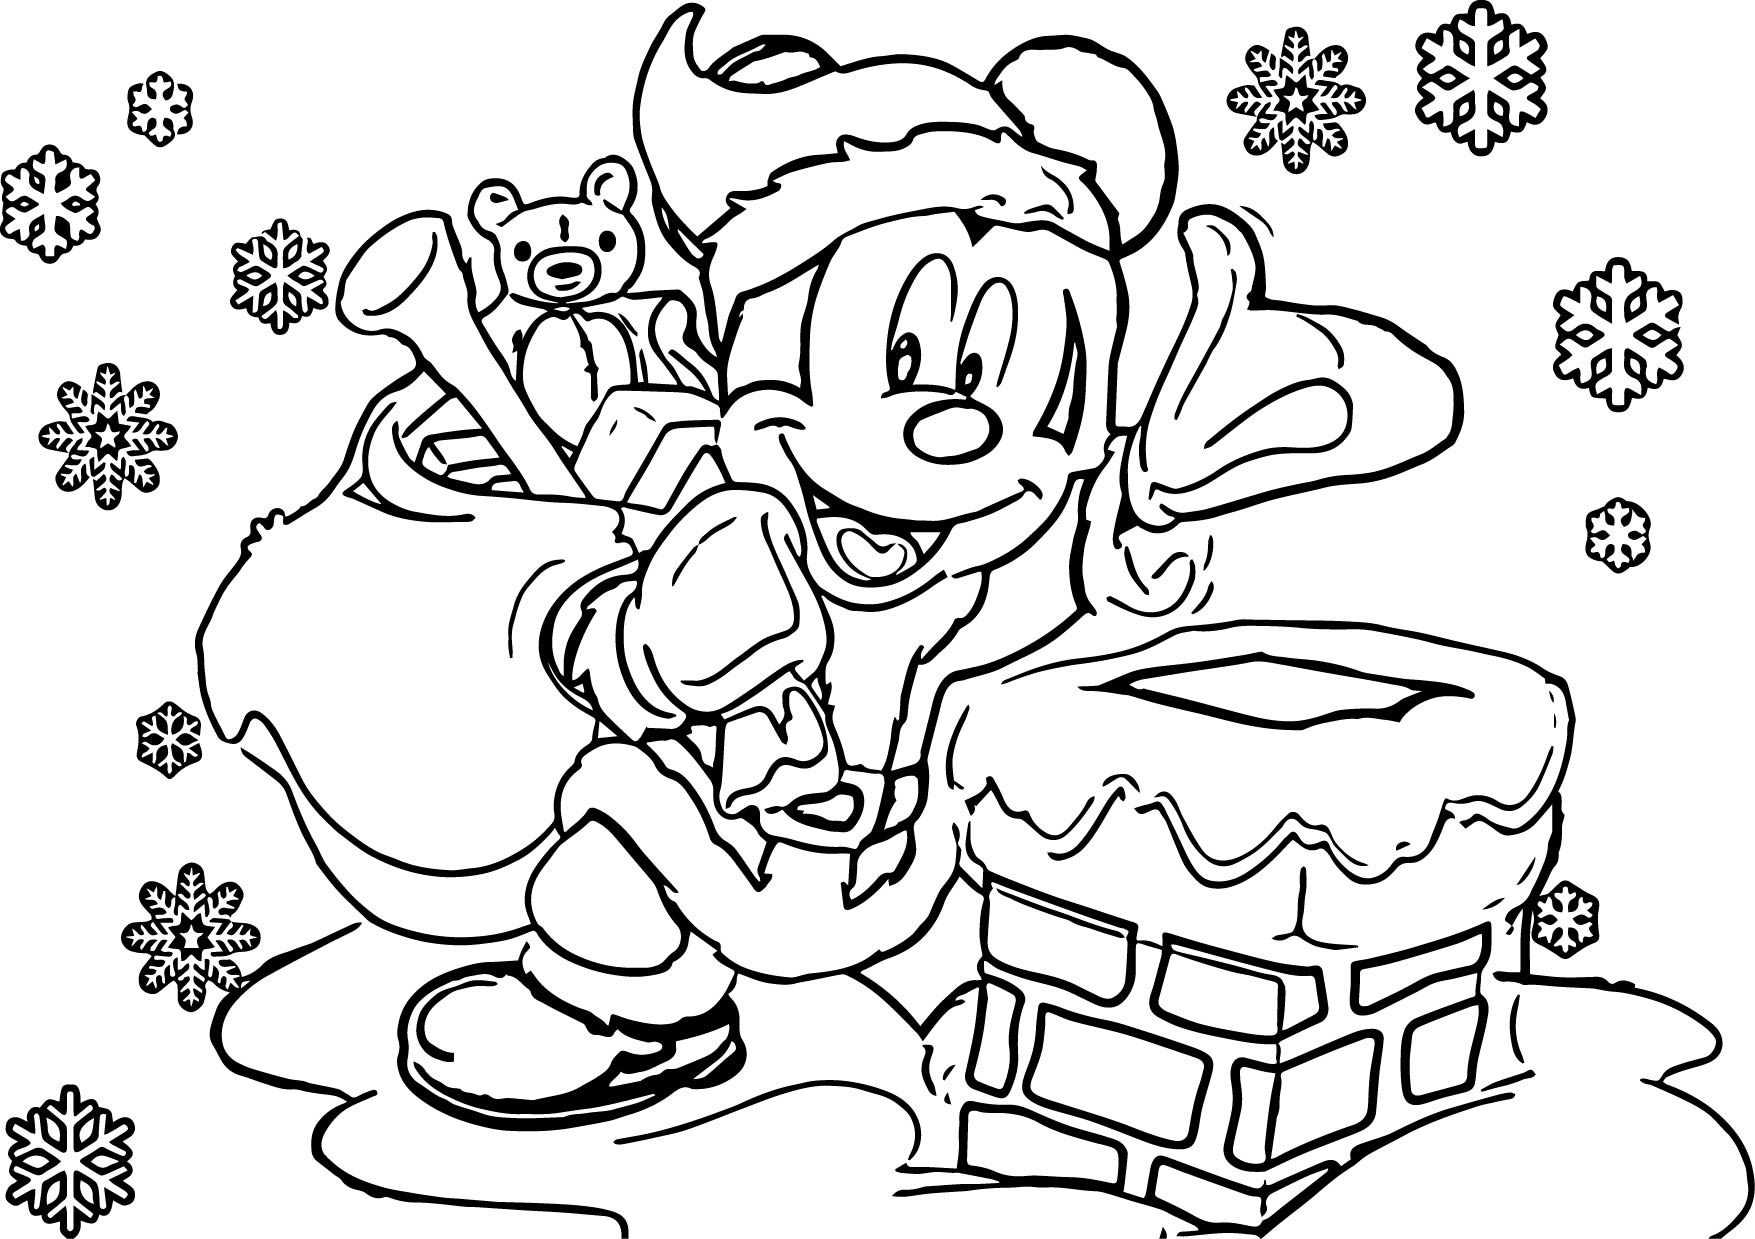 1755x1239 Christmas Cartoon Characters Coloring Pages Printable Coloring